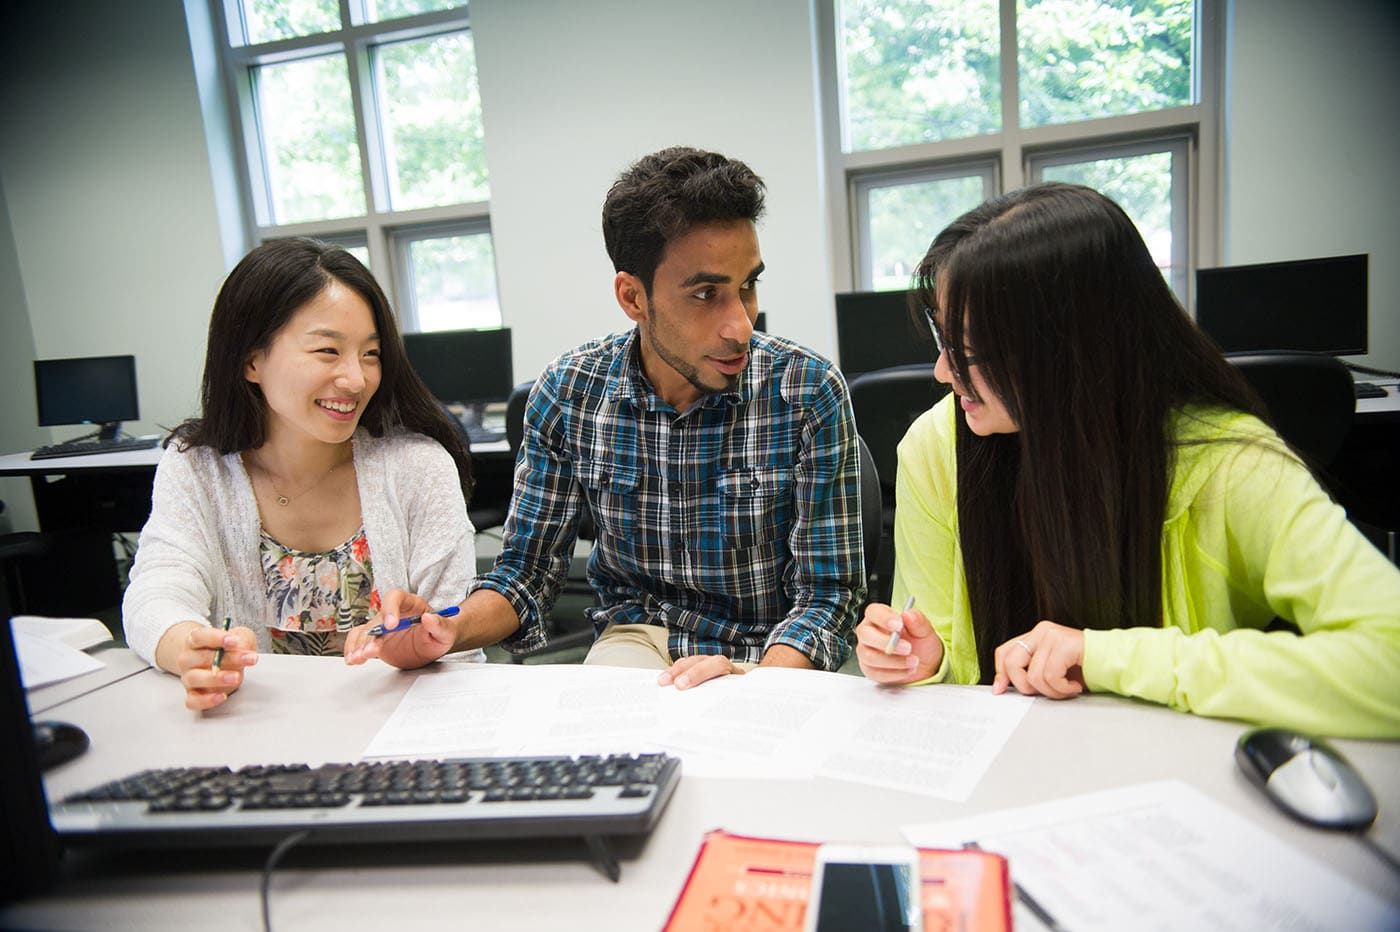 Students study at Mason